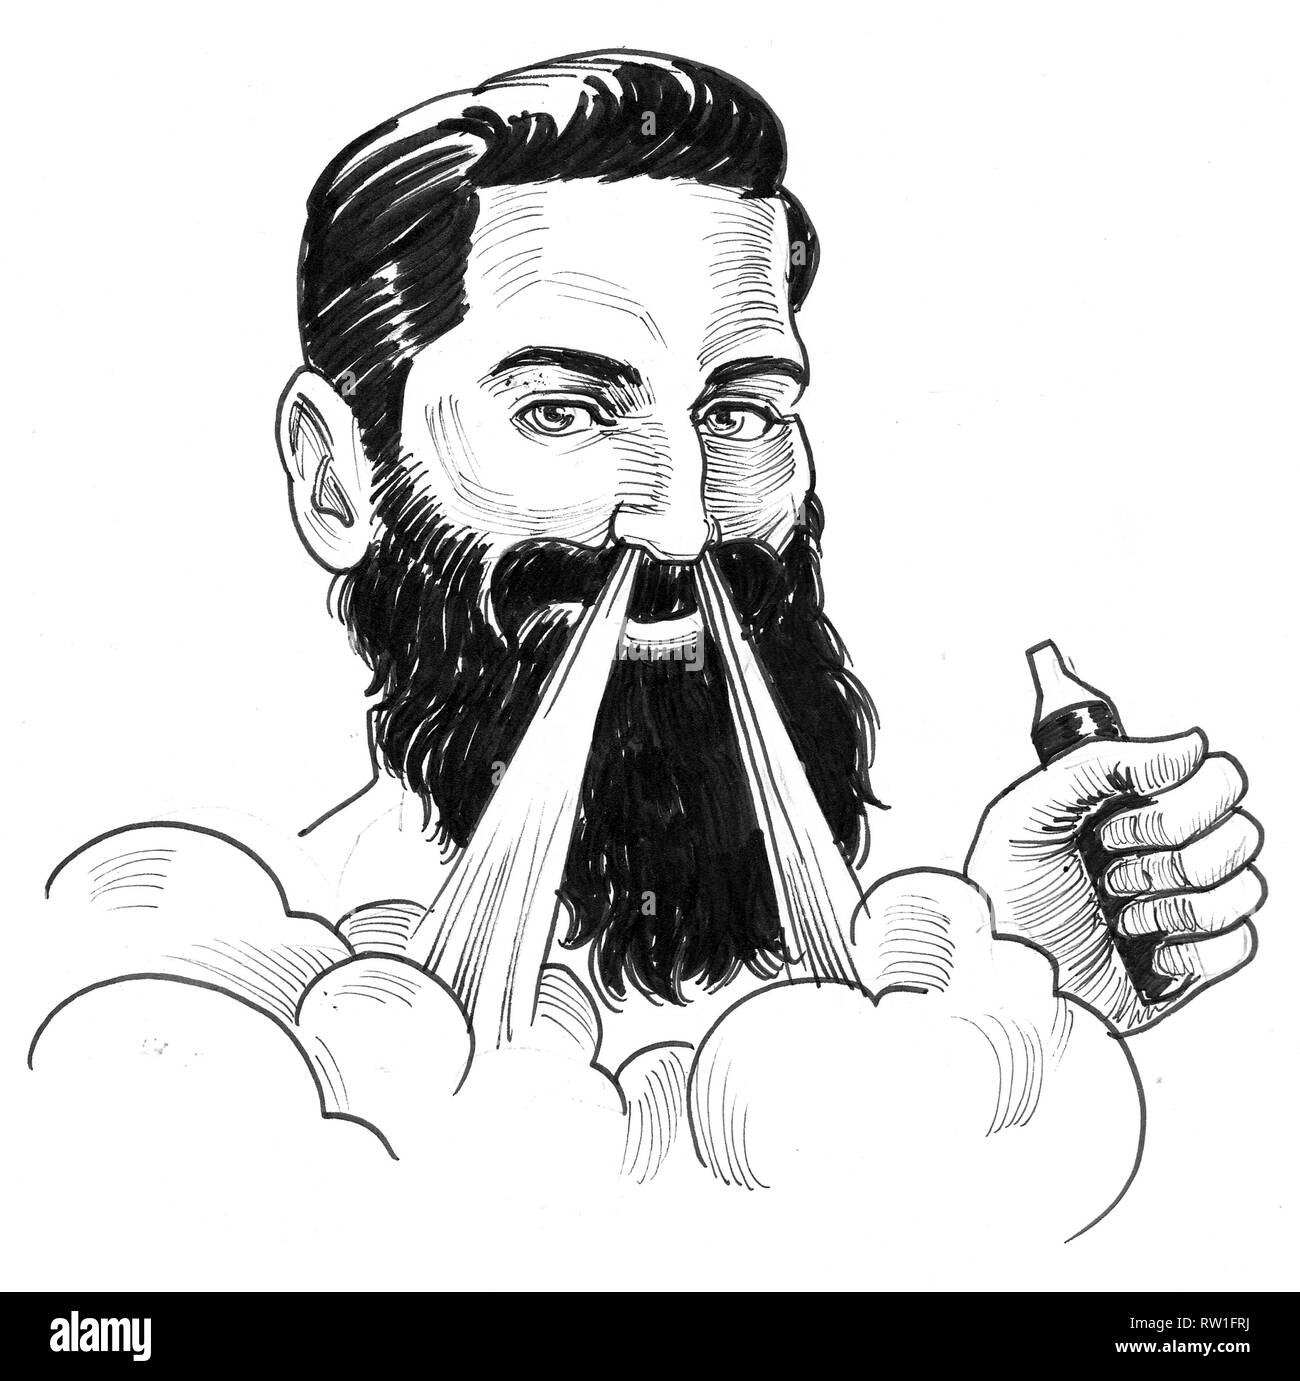 Bearded smiling man with a vaporizer. Ink black and white drawing - Stock Image